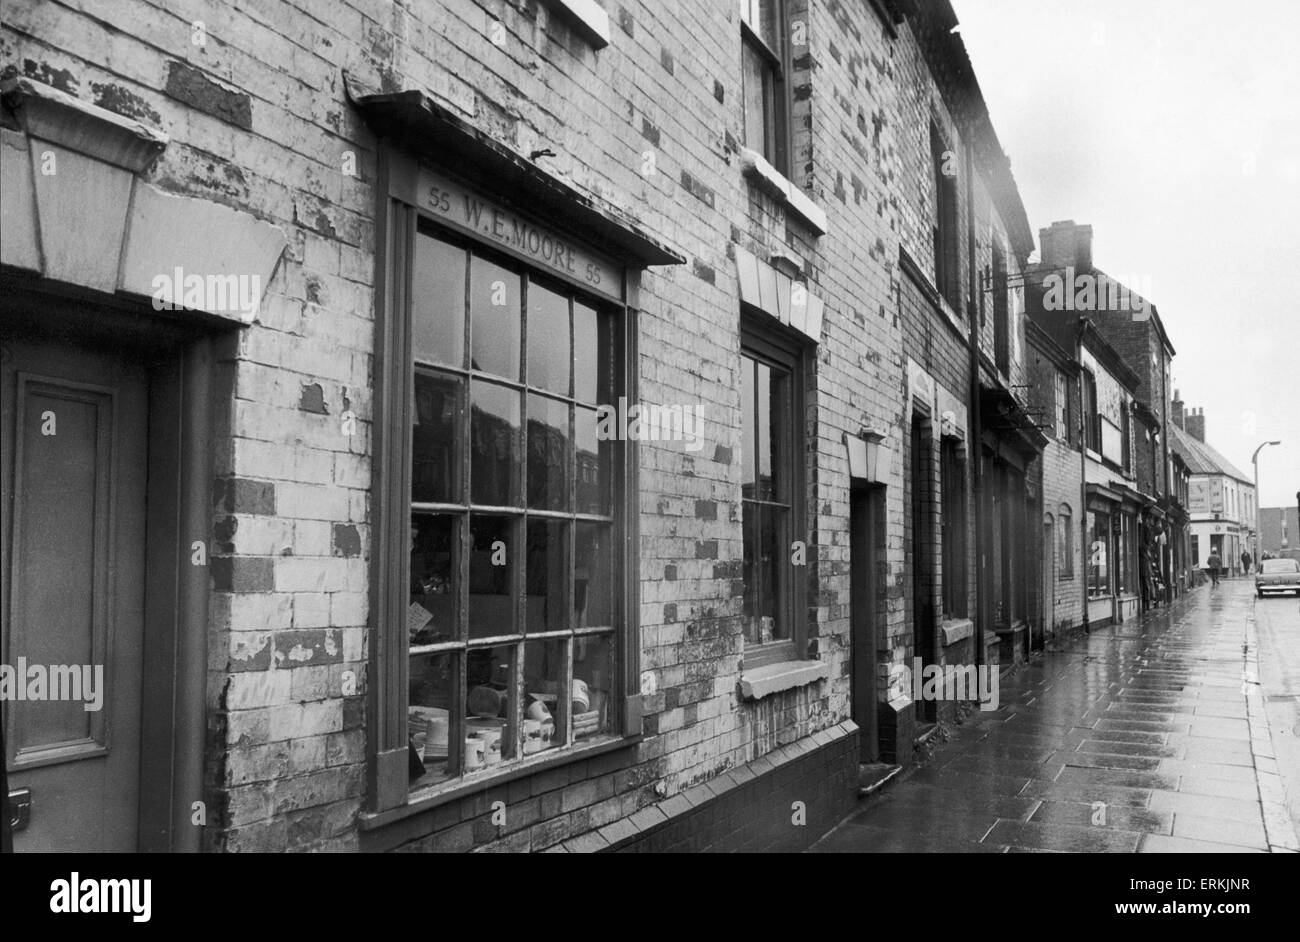 W E Moore China shop in Bedworth.28th August 1968 - Stock Image